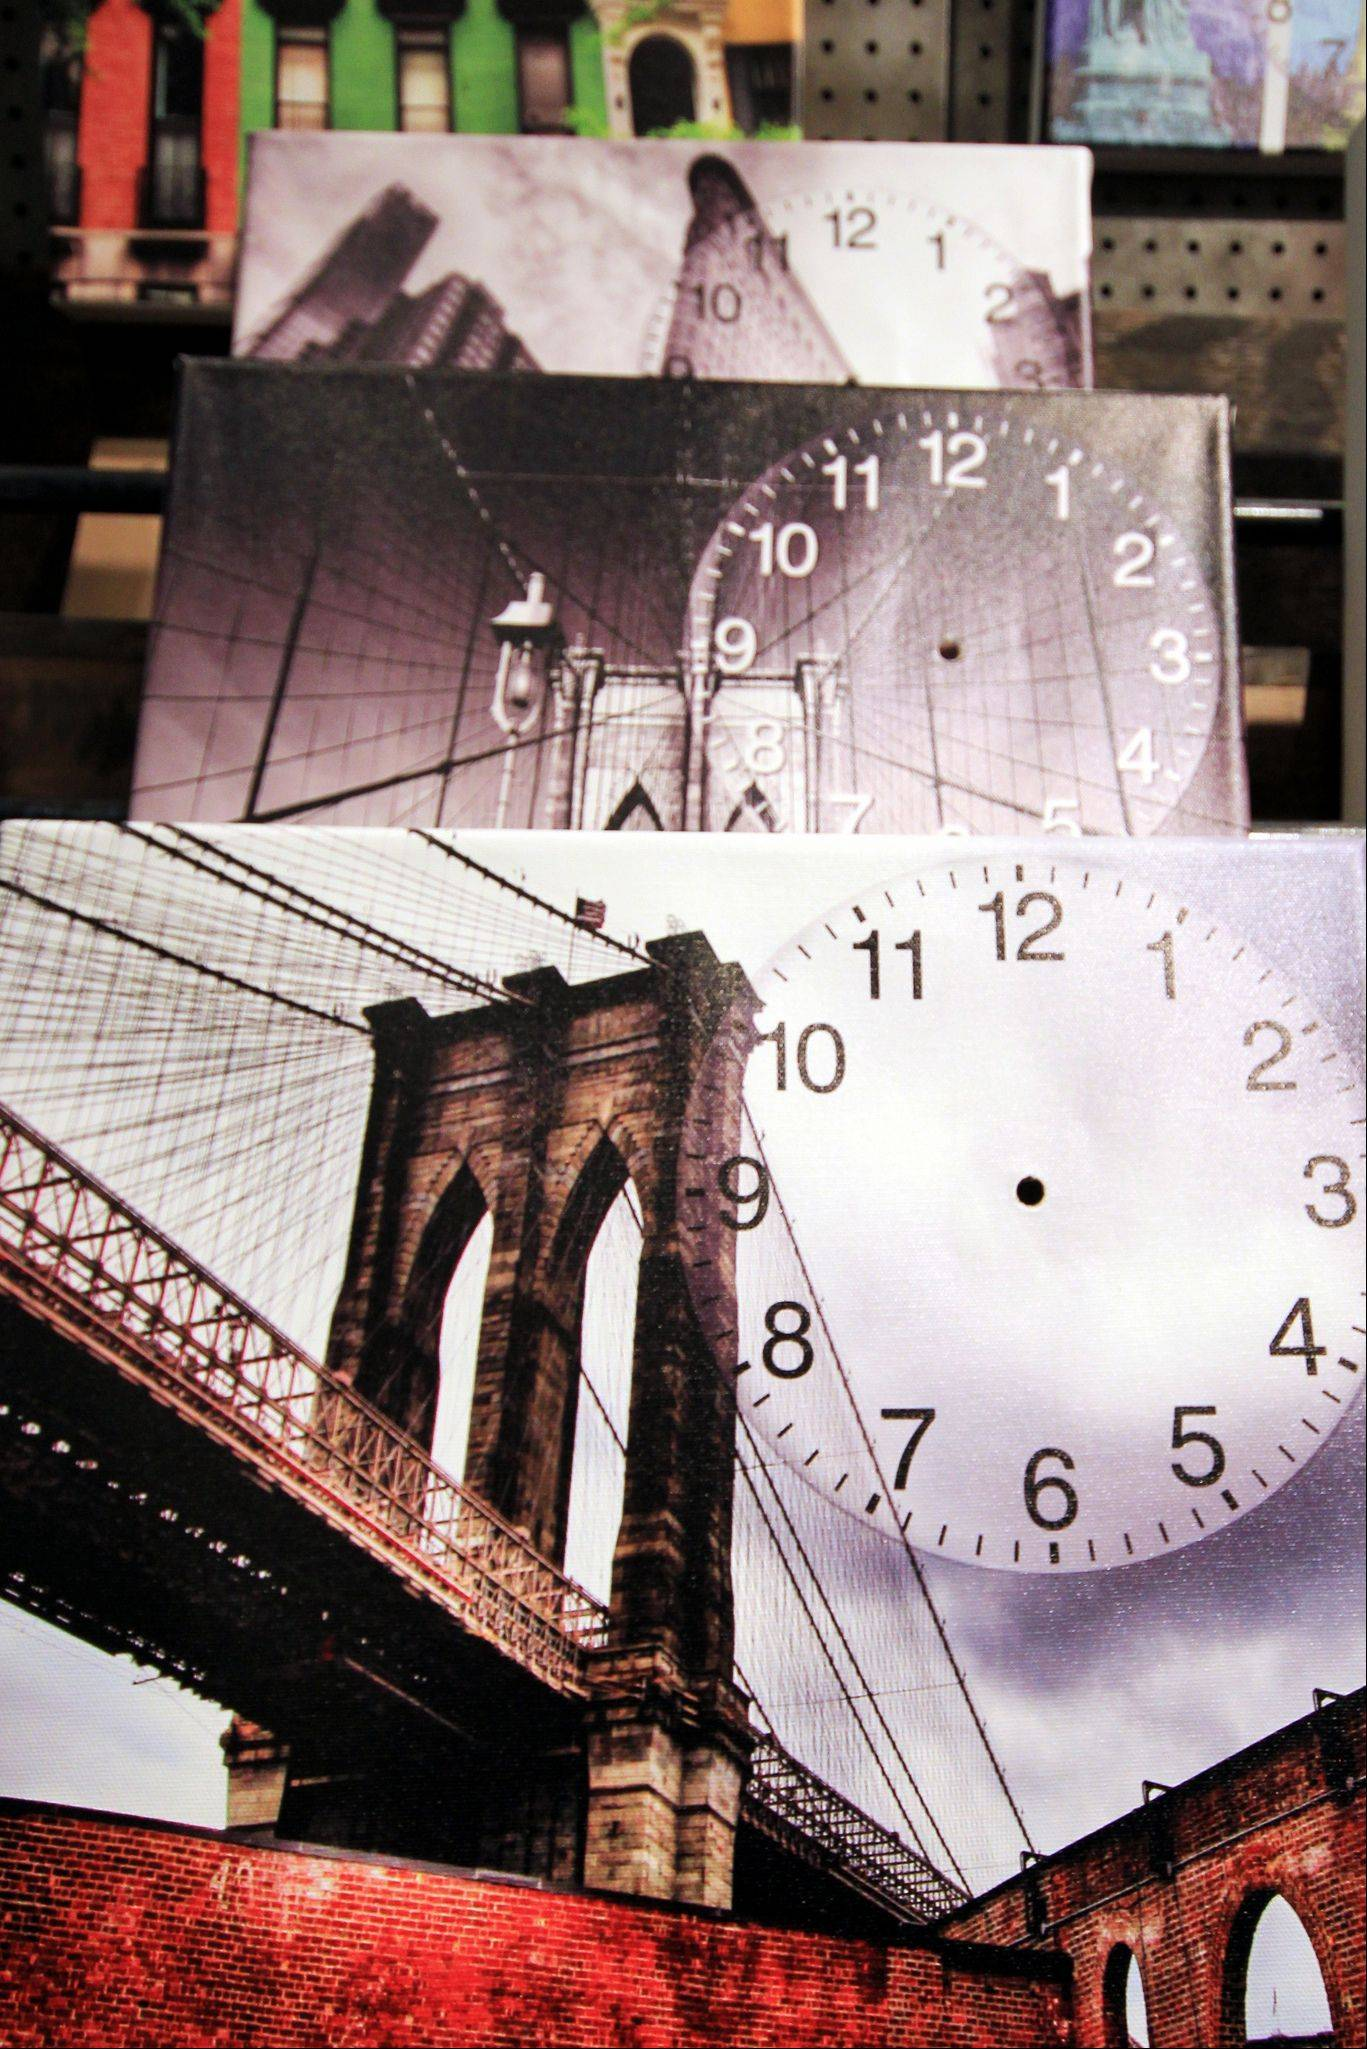 I really enjoy photographing souvenir stands. They can capture the essence of a city in a variety of ways. In a shop, for sale were canvas images of NYC ready to be turned into decorative wall clocks. I liked the stacking� of the images and the outline for telling time, without the hands.